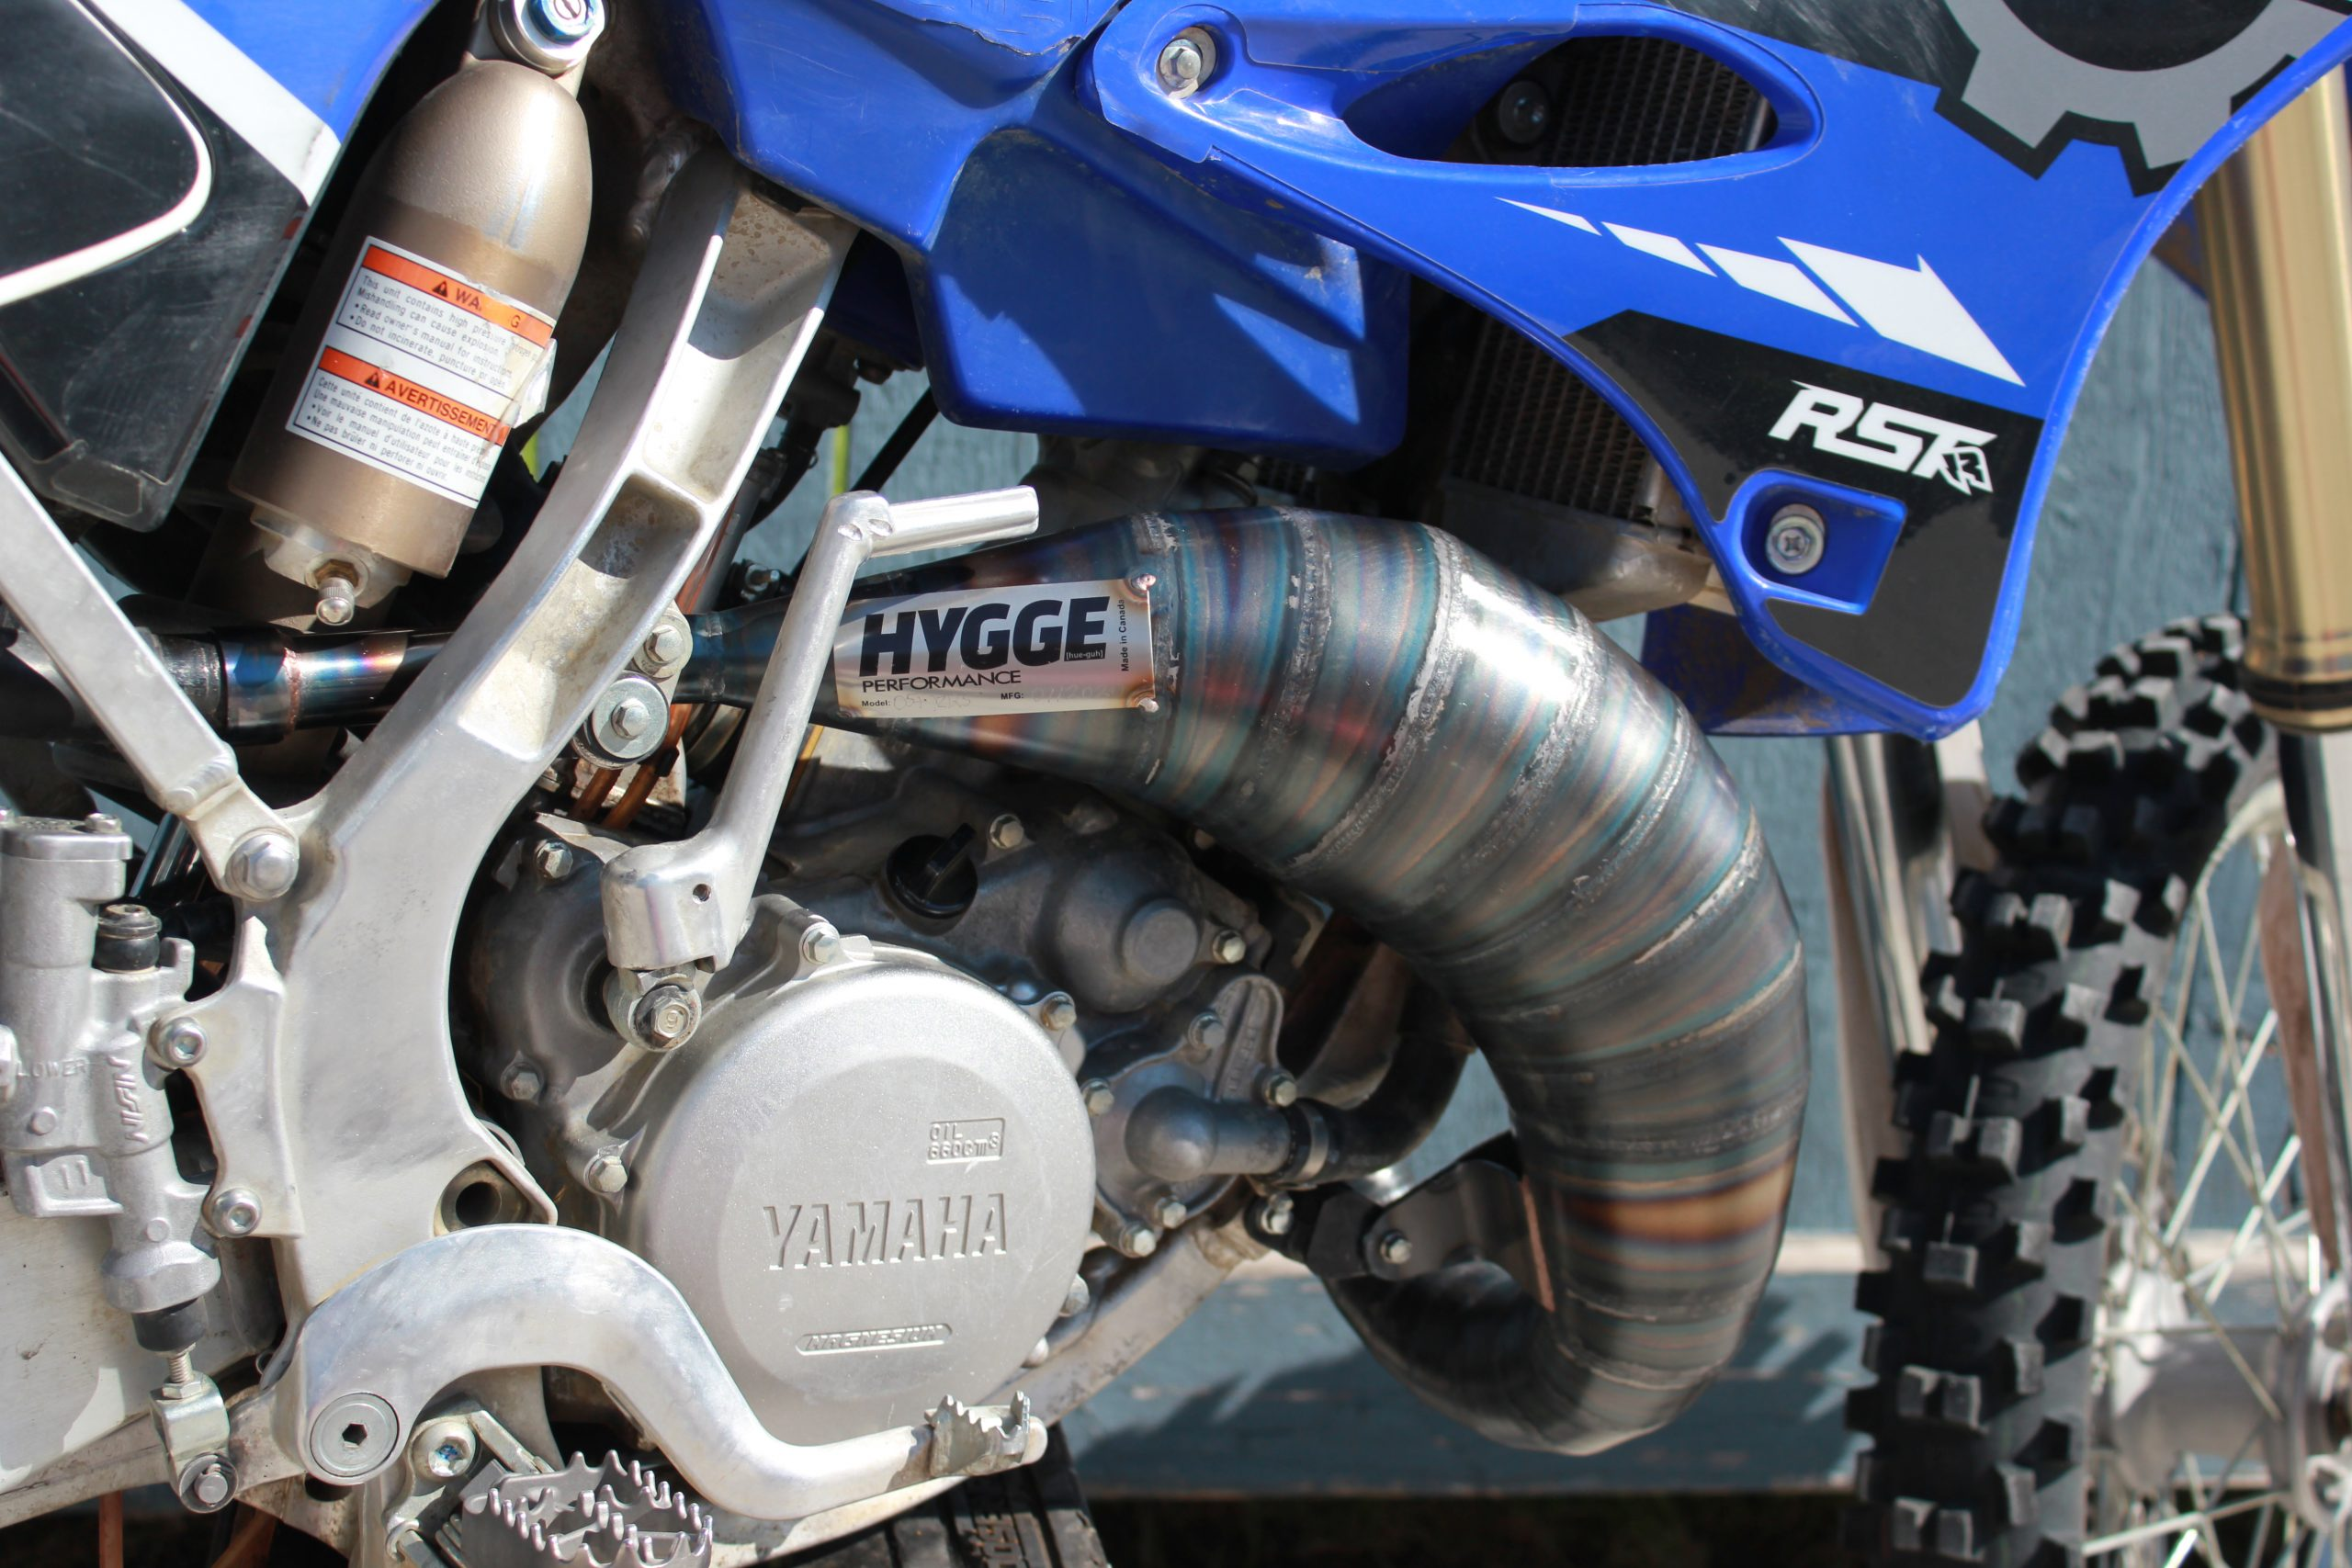 HYGGE PERFORMANCE YZ125 Cone Pipe Two Stroke Exhaust